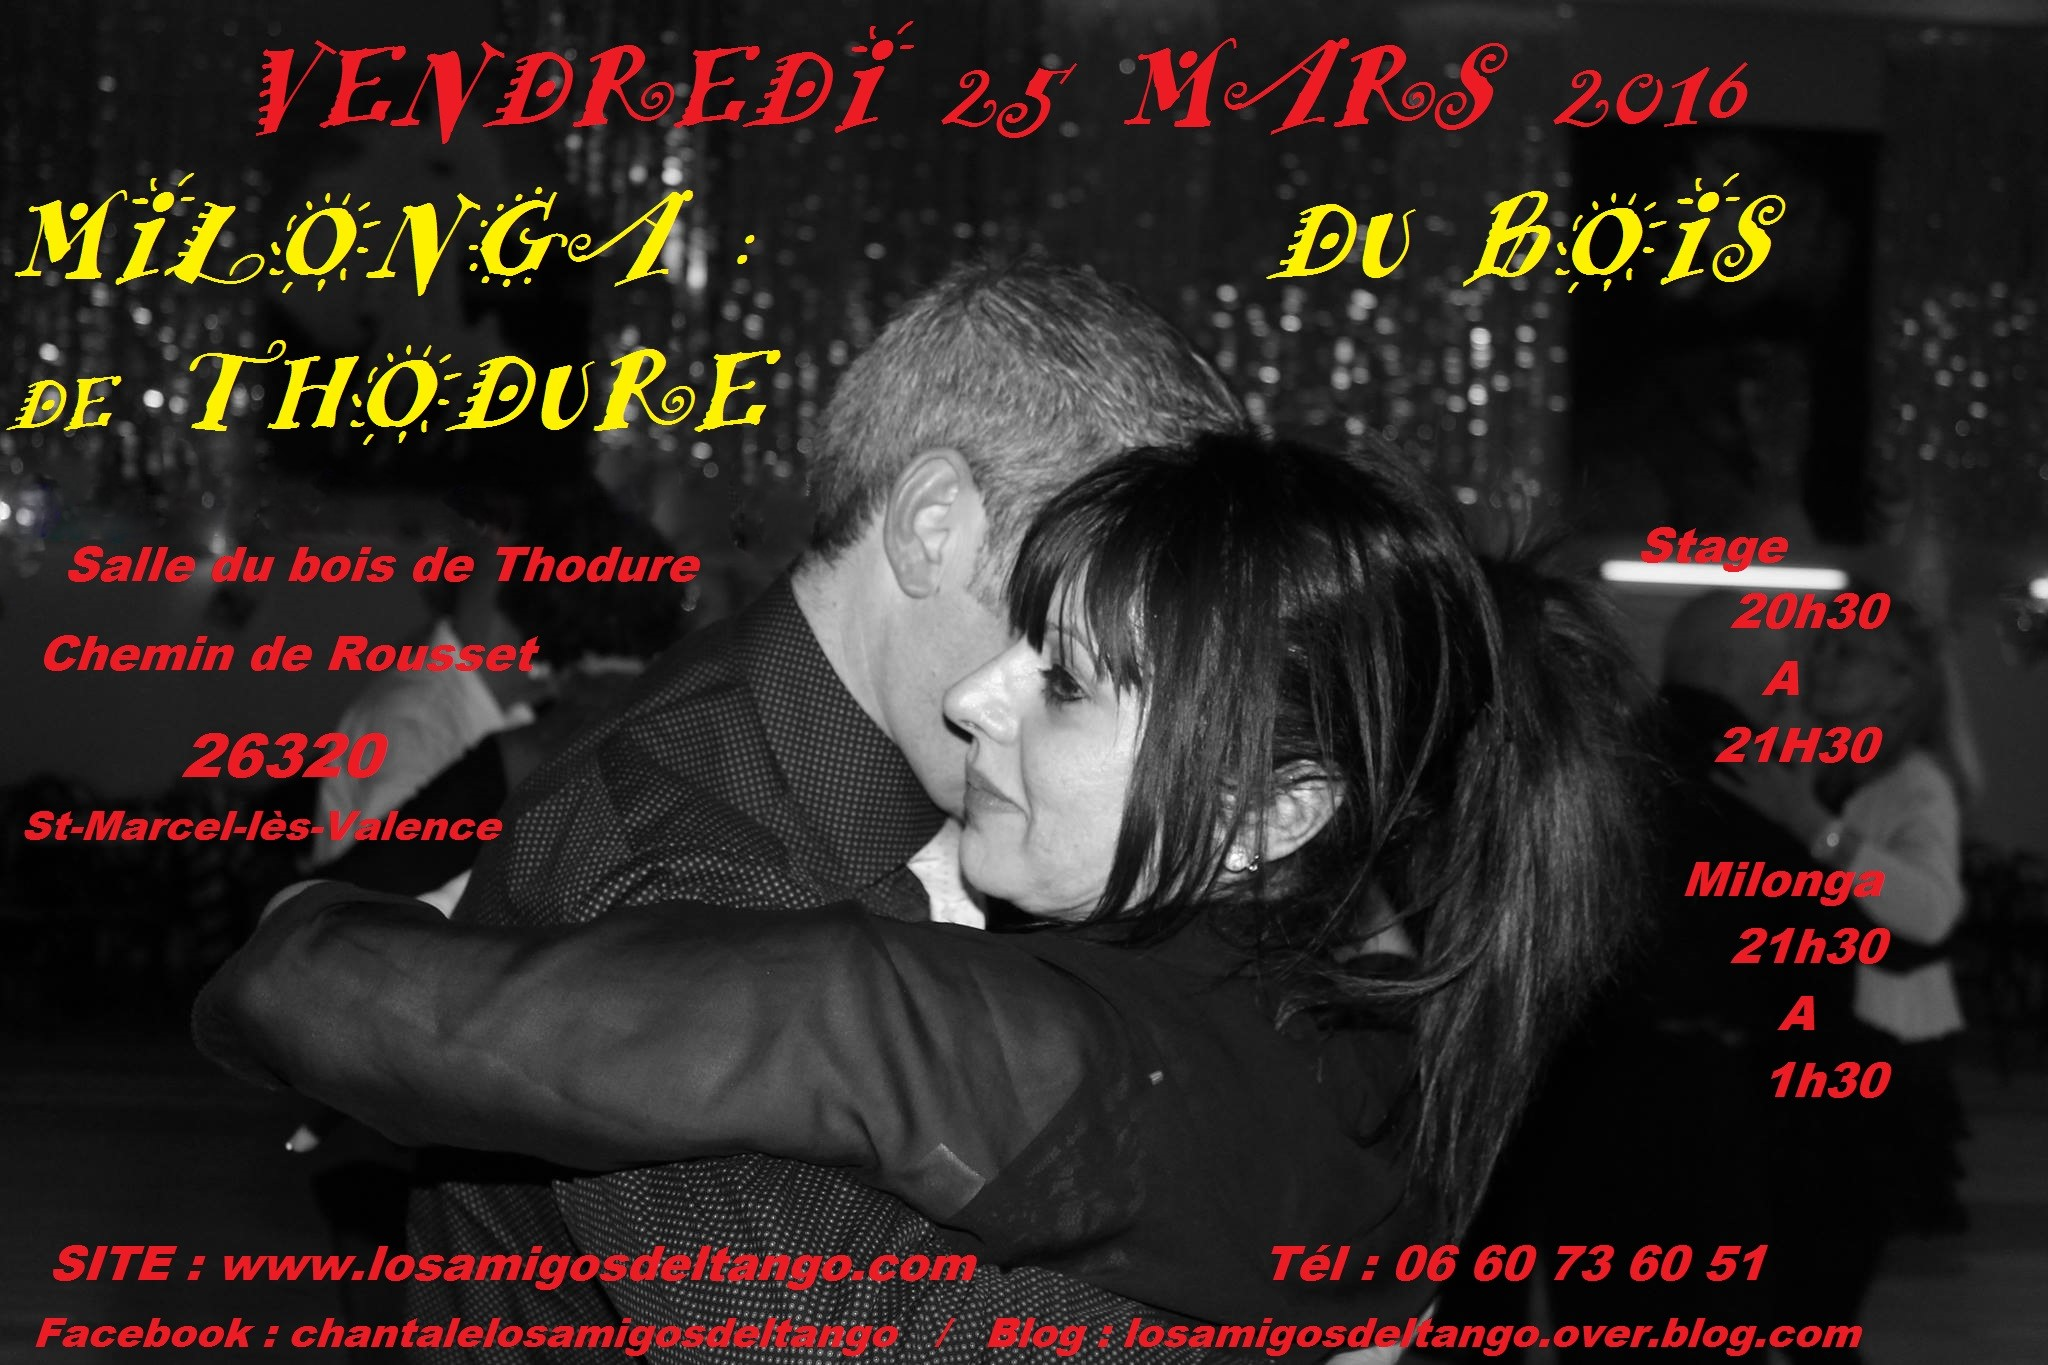 2016 AFFICHE MILONGA DE THODURE photo  Audray lionel.jpg